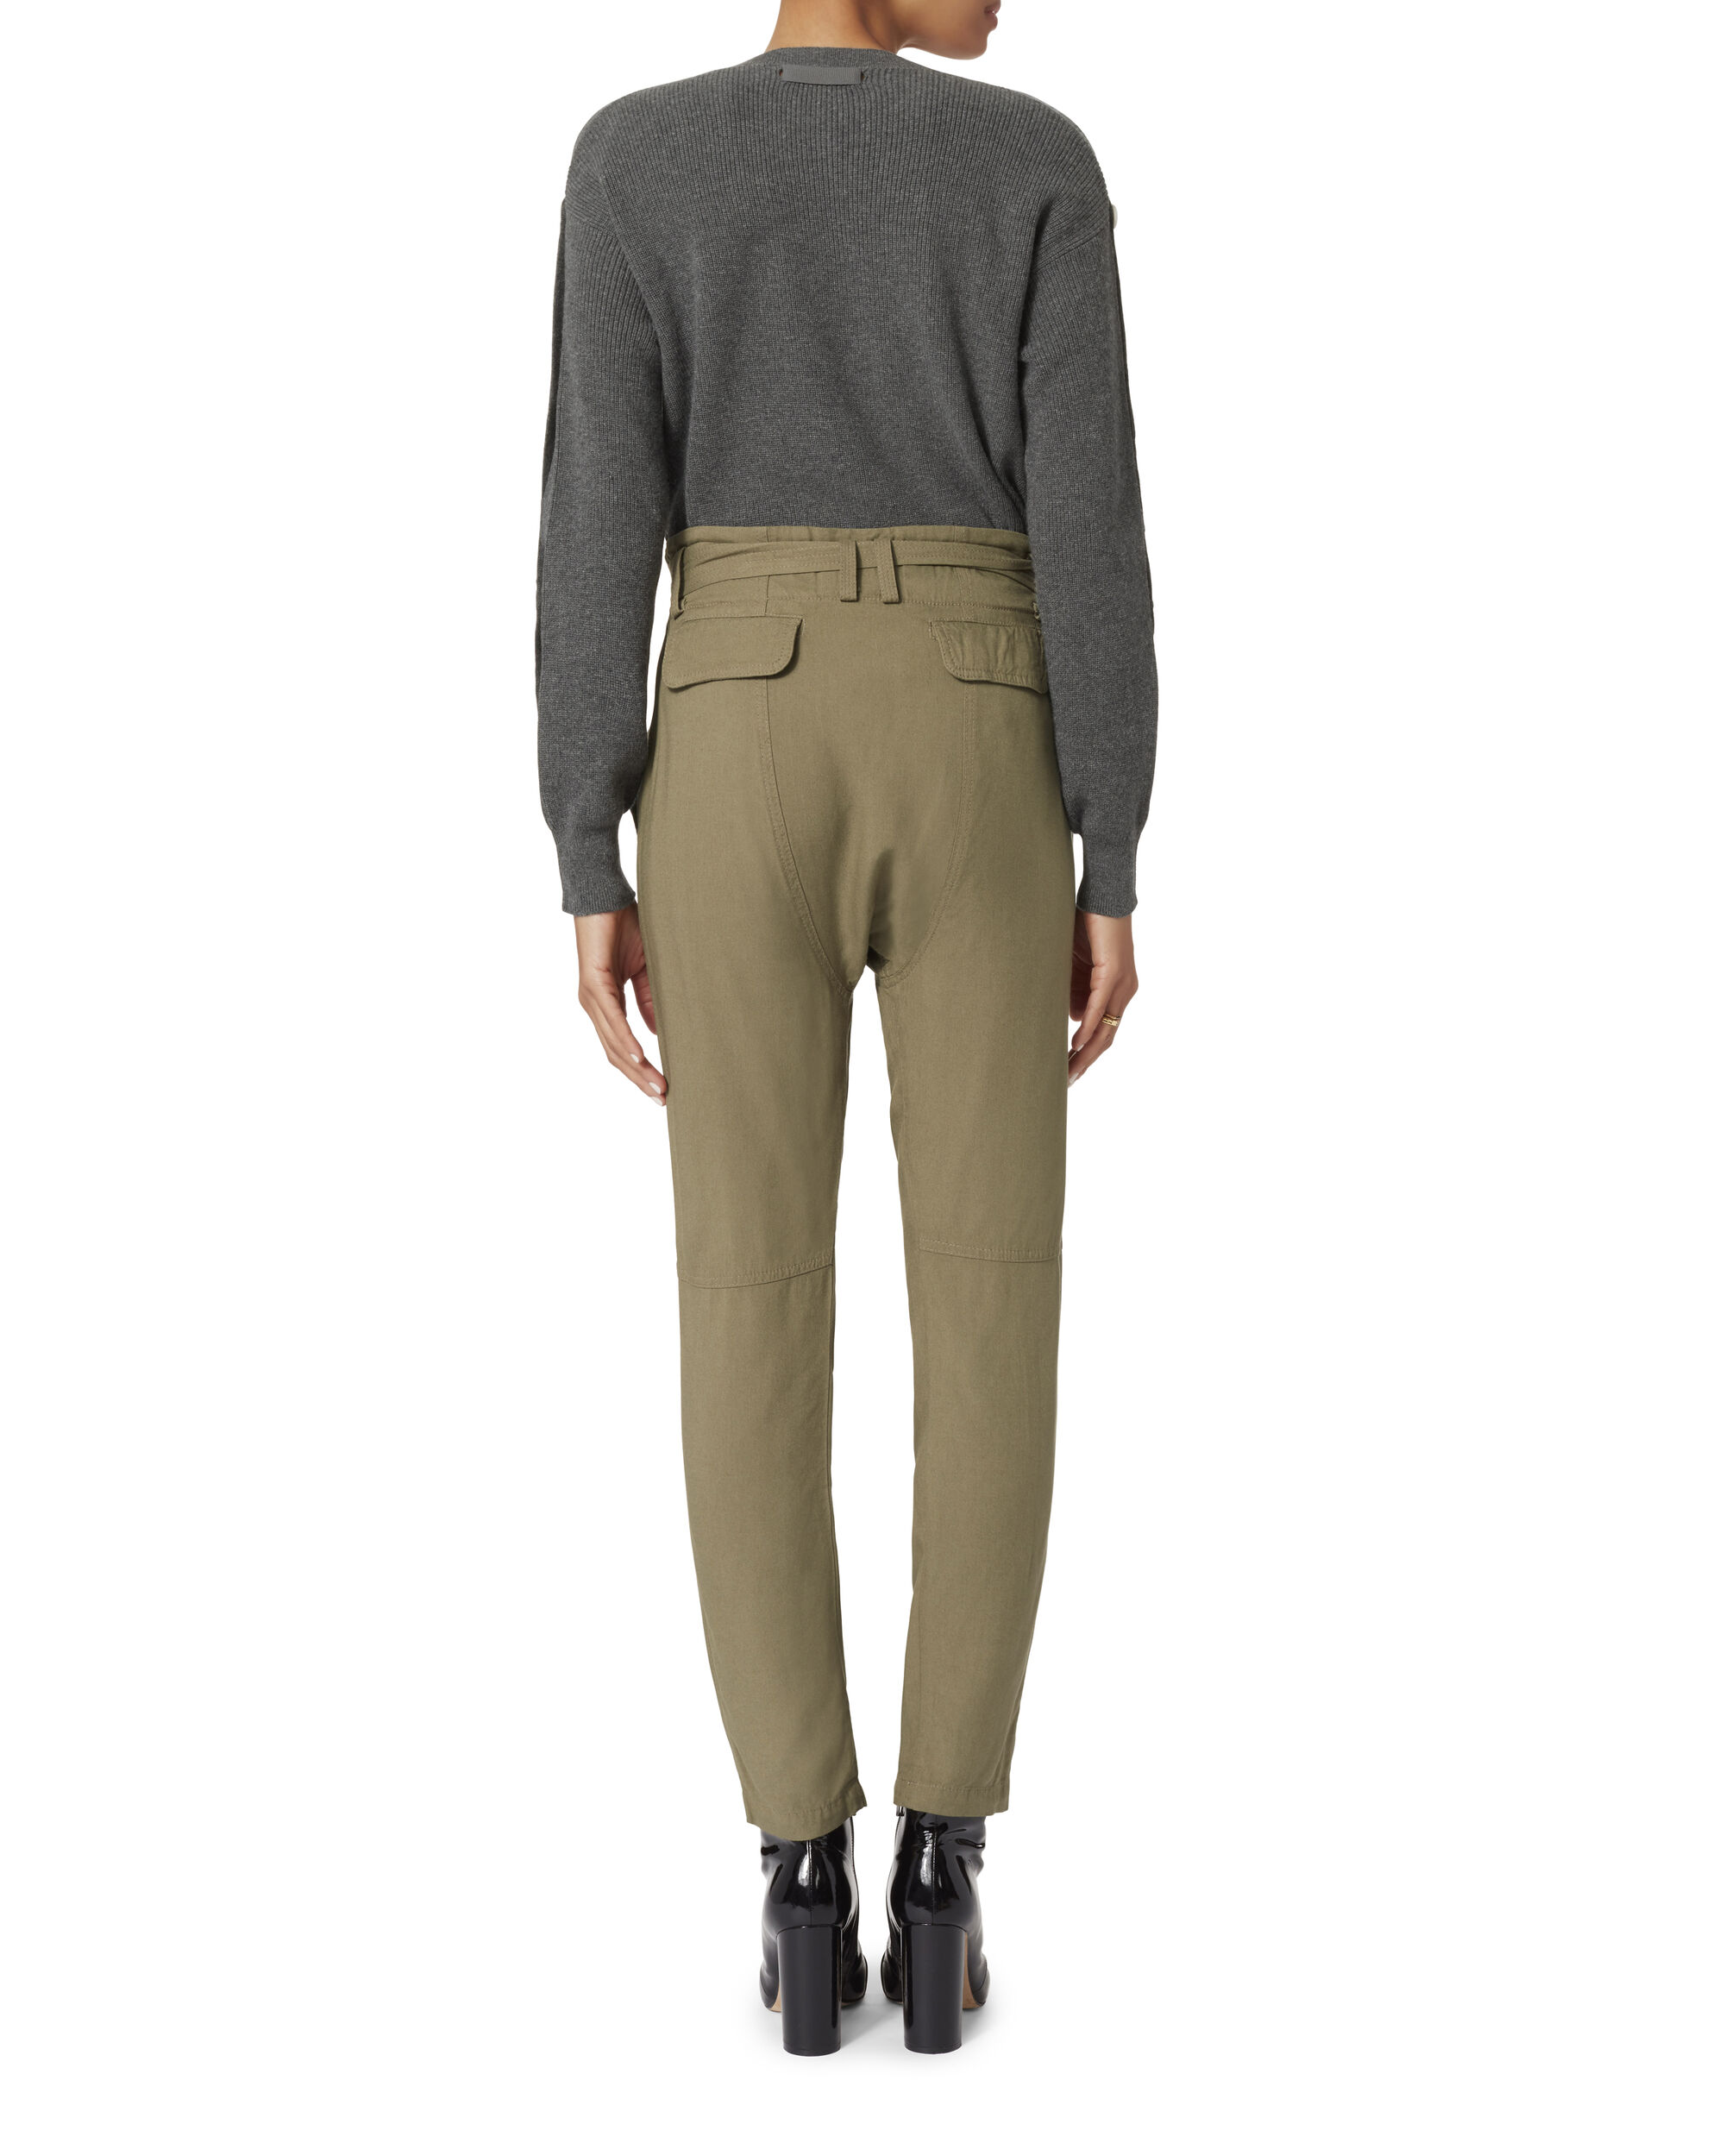 Ansel Belted Pants, OLIVE/ARMY, hi-res